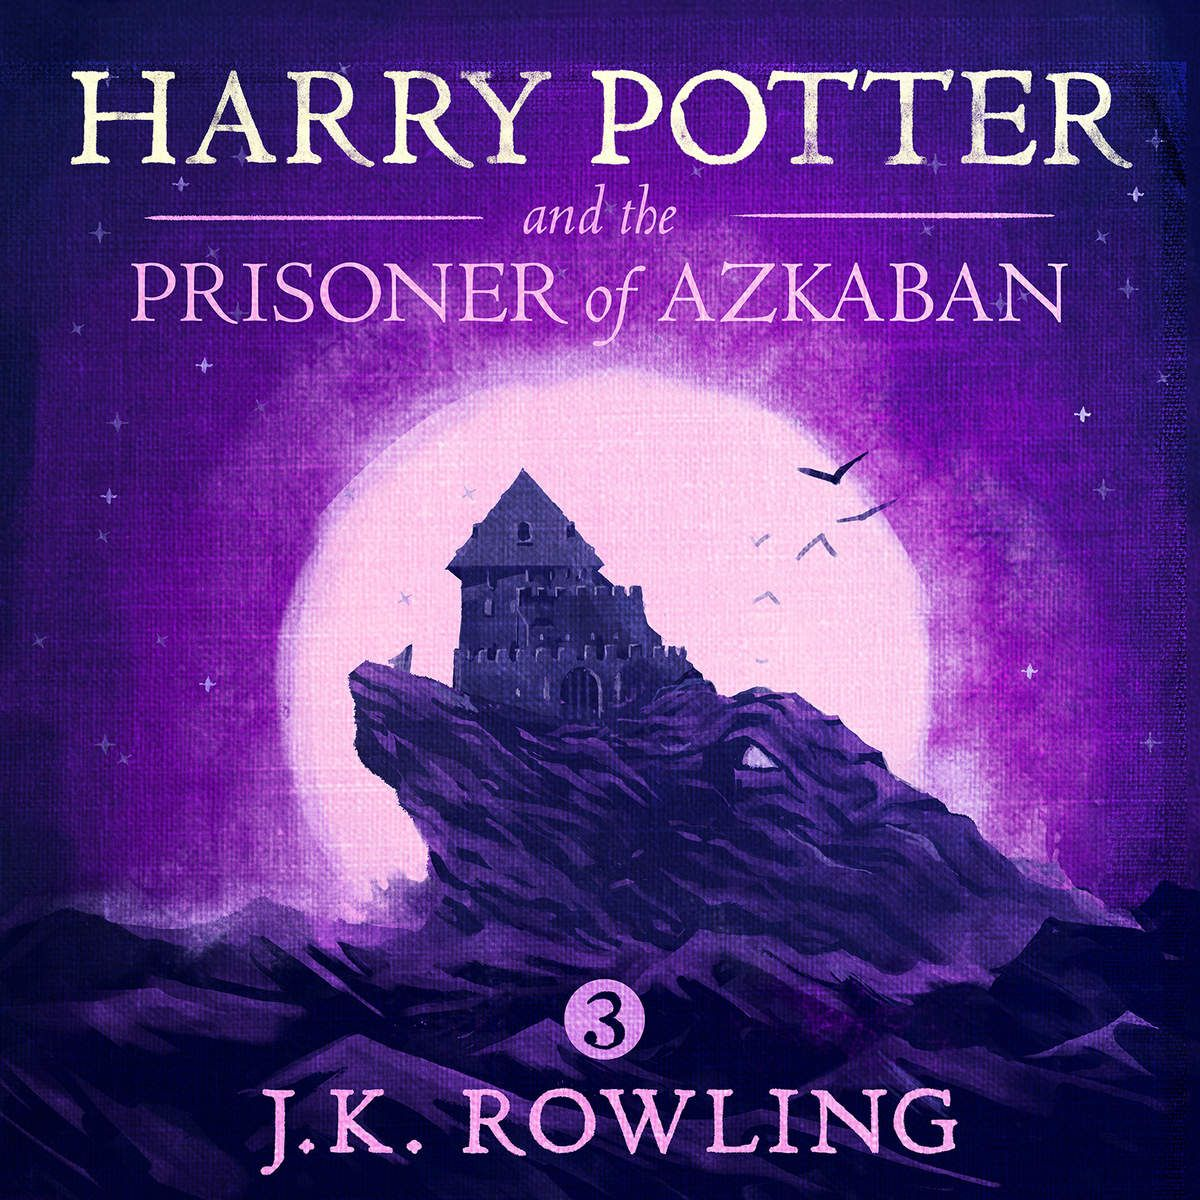 a book analysis of harry potter and the prisoner of azkaban by j k rowling Overview/analysis: drama certainly has a way of dogging harry's footsteps i started the harry potter series with the third book, harry potter and the prisoner of azkaban for that reason.